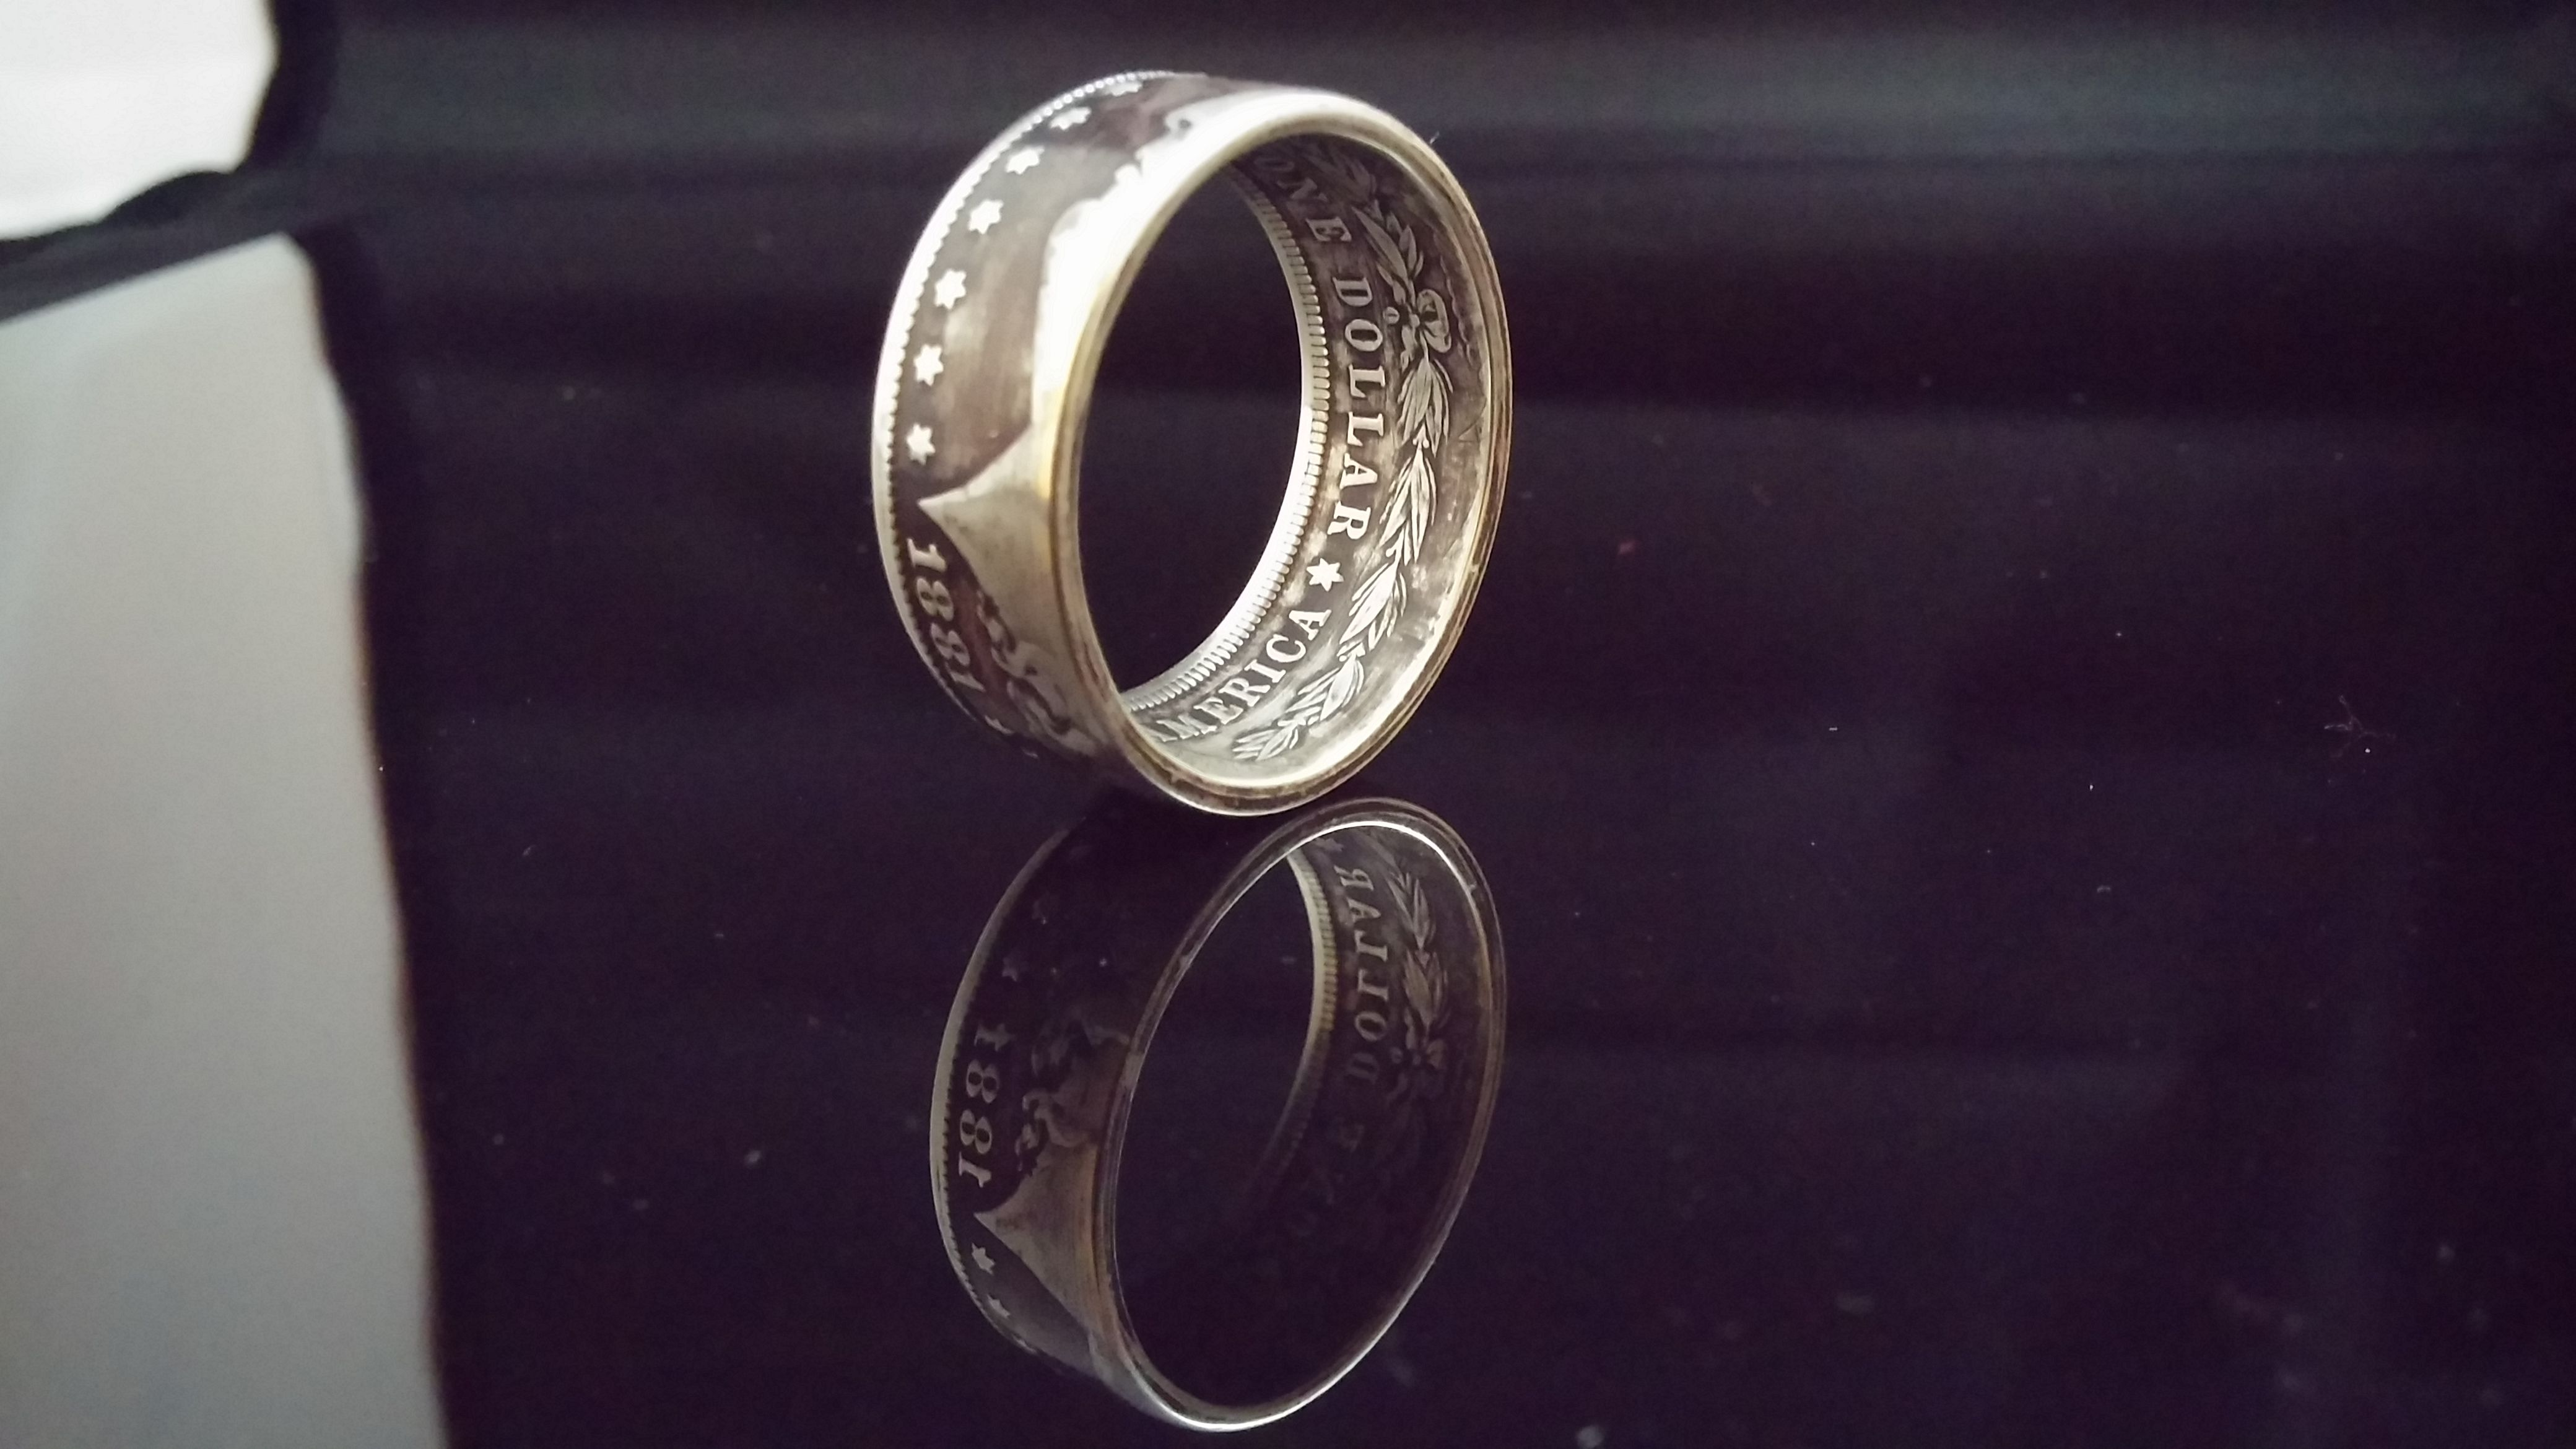 1881 Morgan Silver Dollar Ring size 15.  http://thetwistedcoin.etsy.com